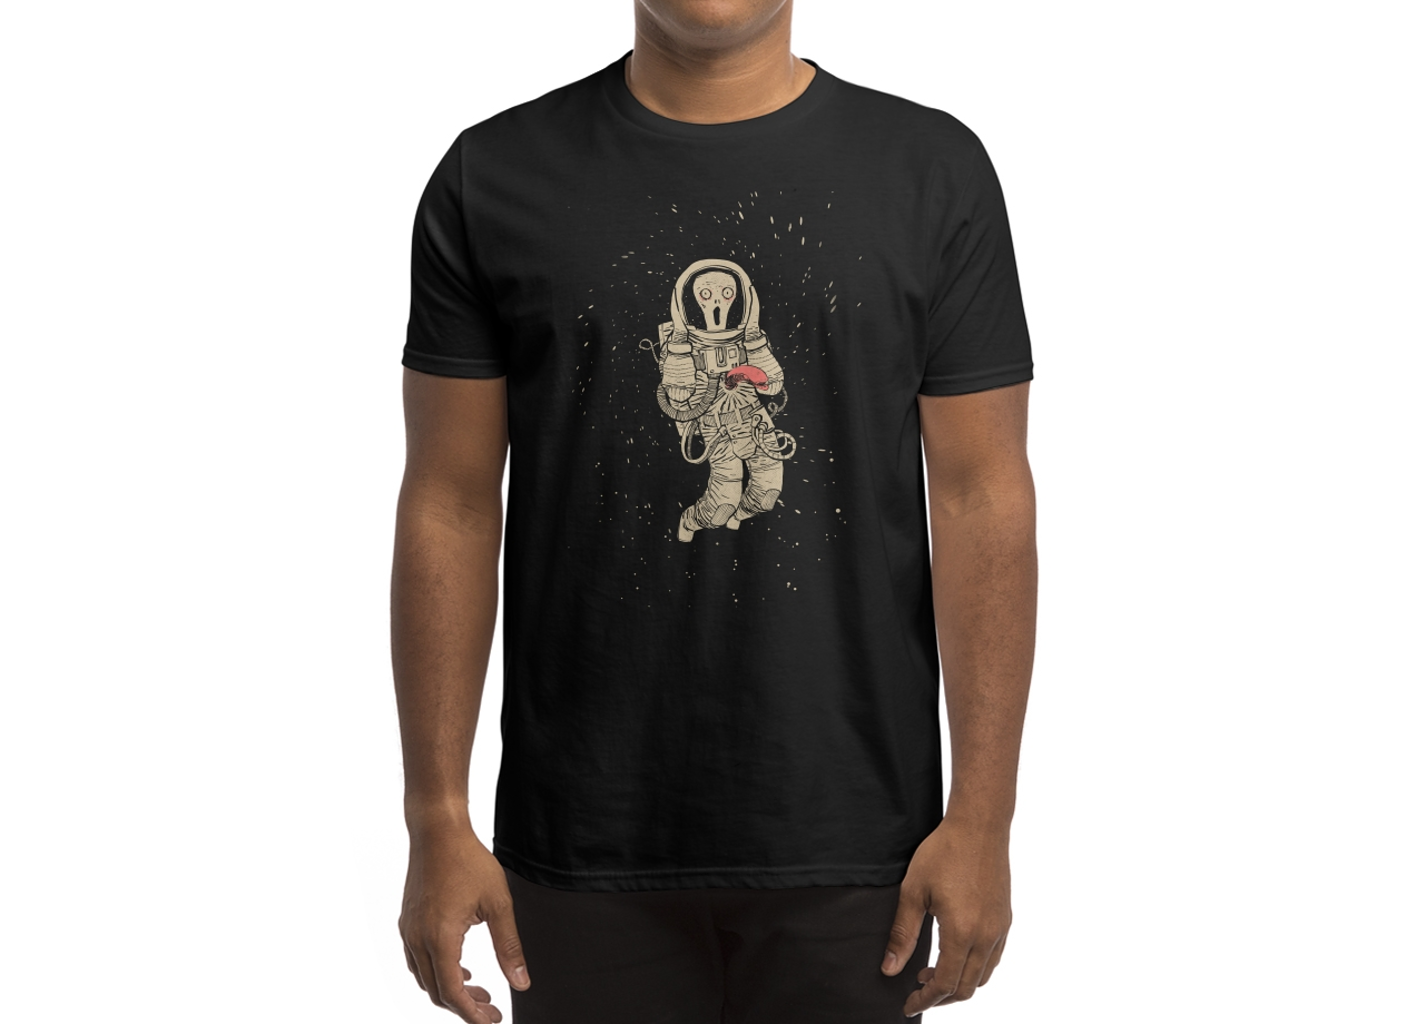 Threadless: In Space no one can hear you scream